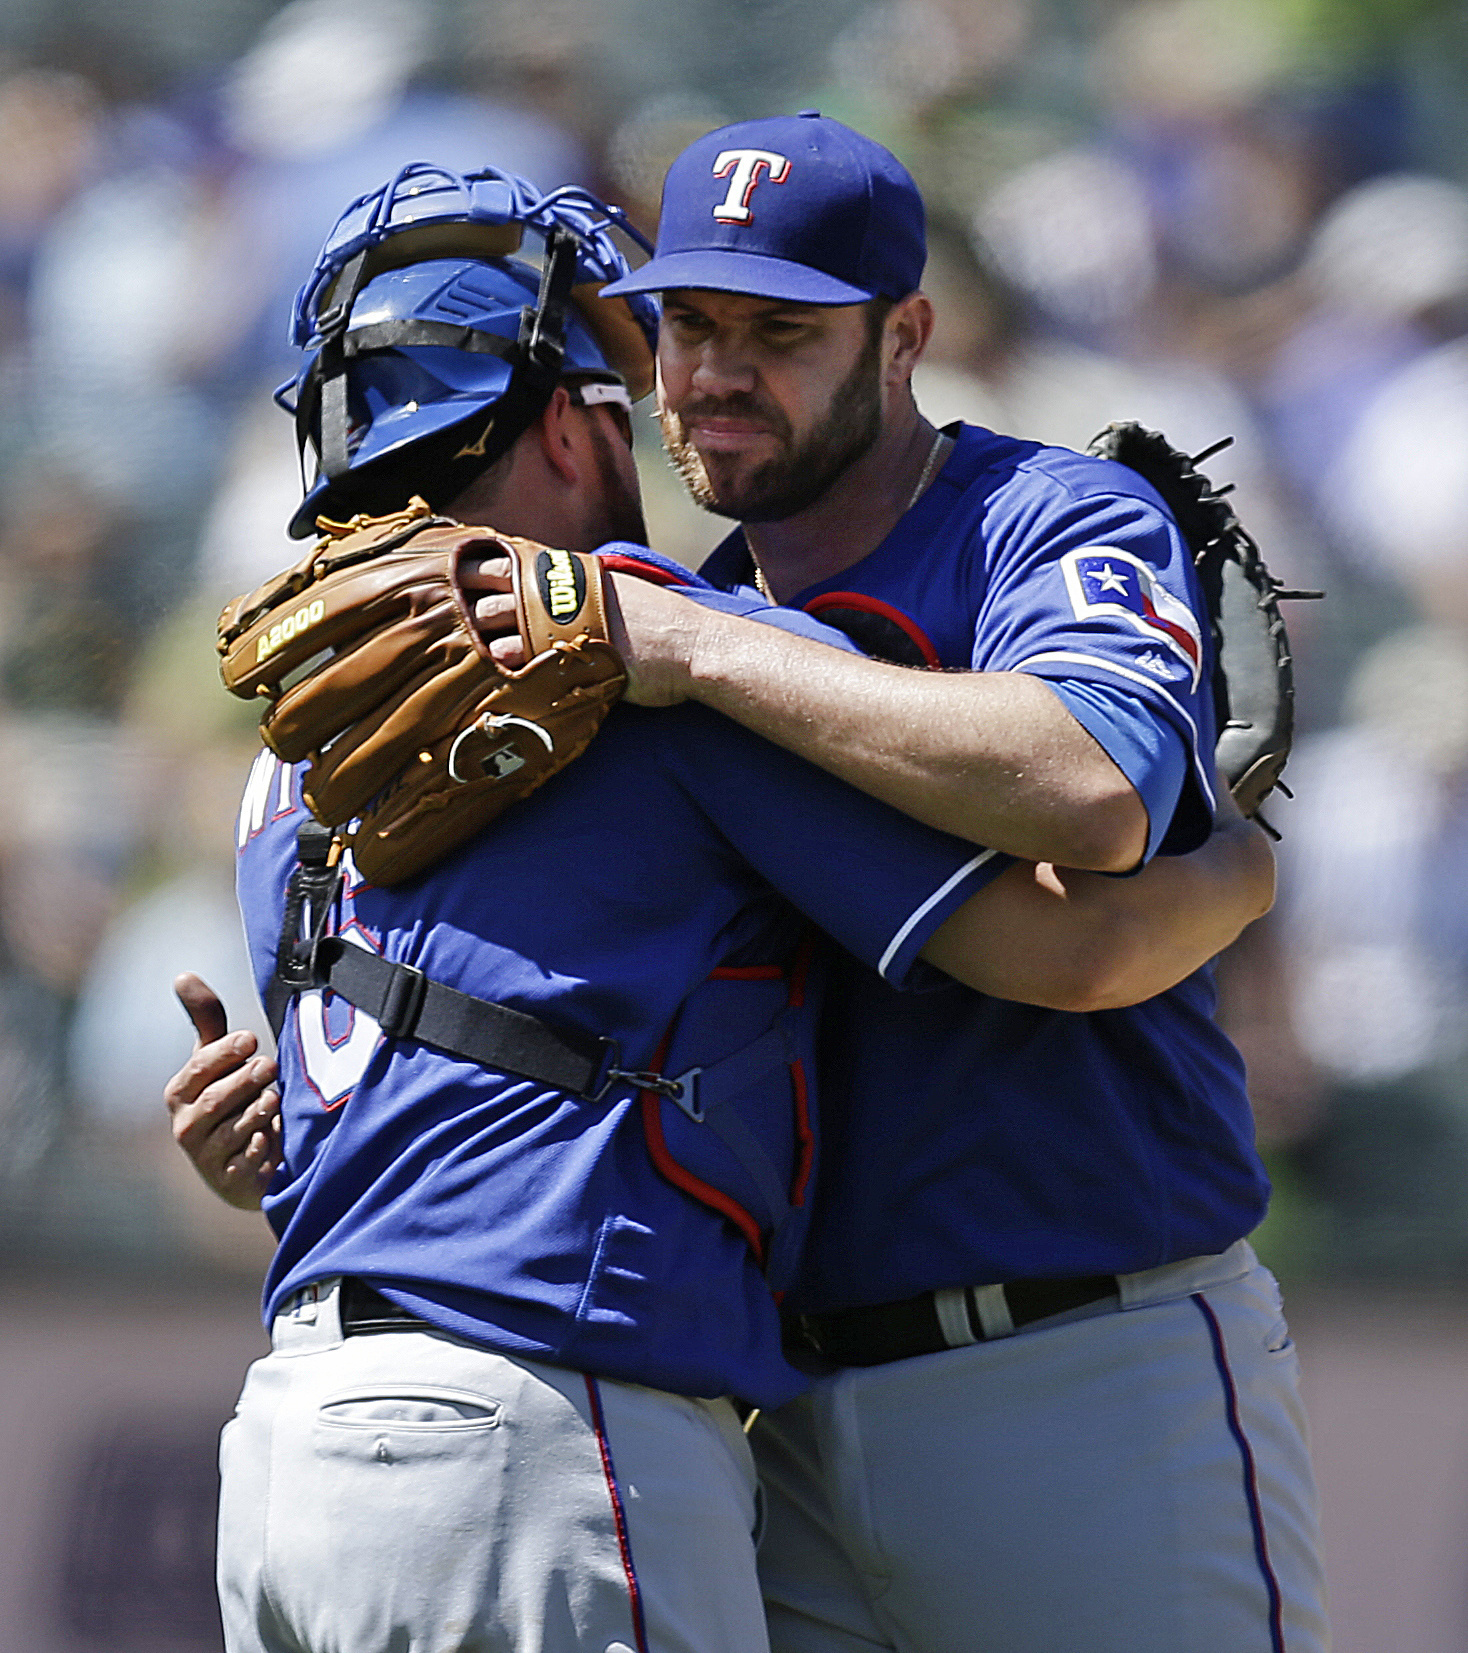 Texas Rangers pitcher Colby Lewis, right, and catcher Bobby Wilson embrace at the end of a baseball game against the Oakland Athletics, Thursday, June 16, 2016, in Oakland, Calif. (AP Photo/Ben Margot)